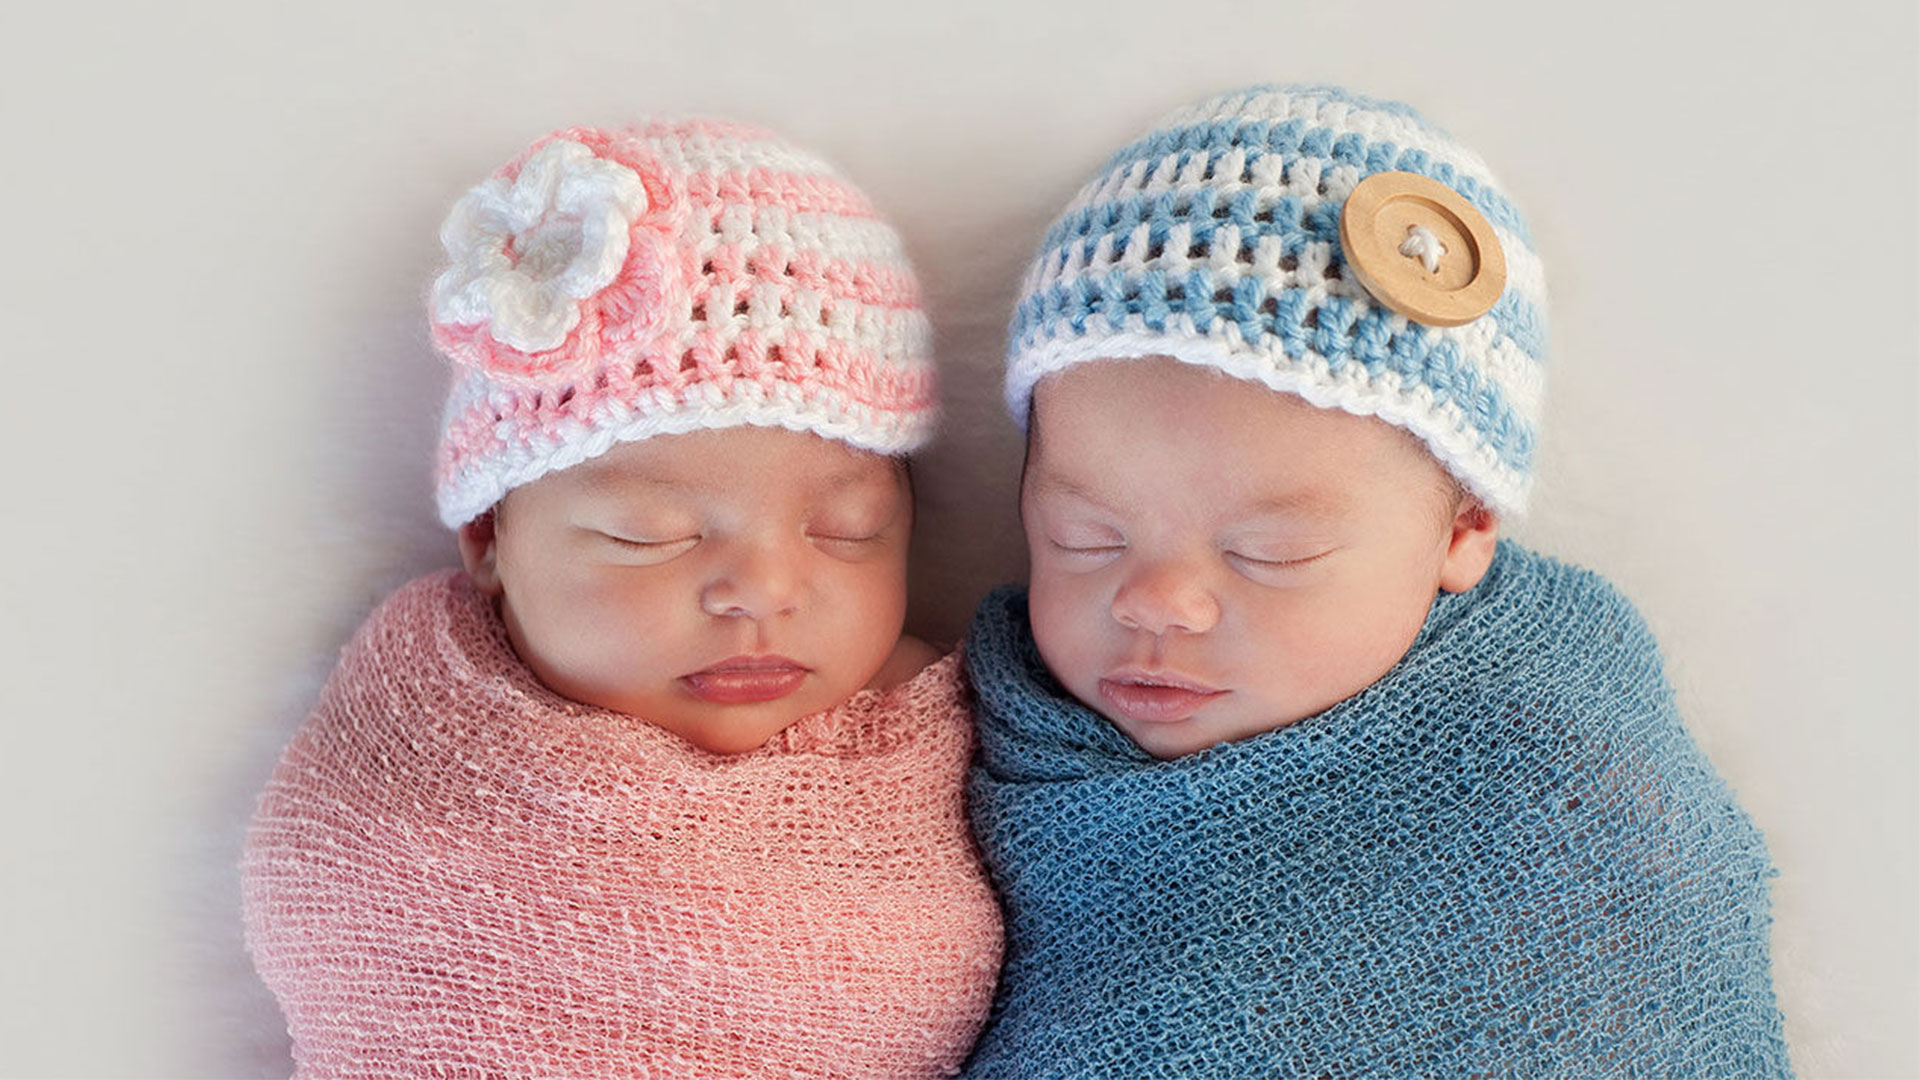 The Healthy Average Weight of a Newborn Twins